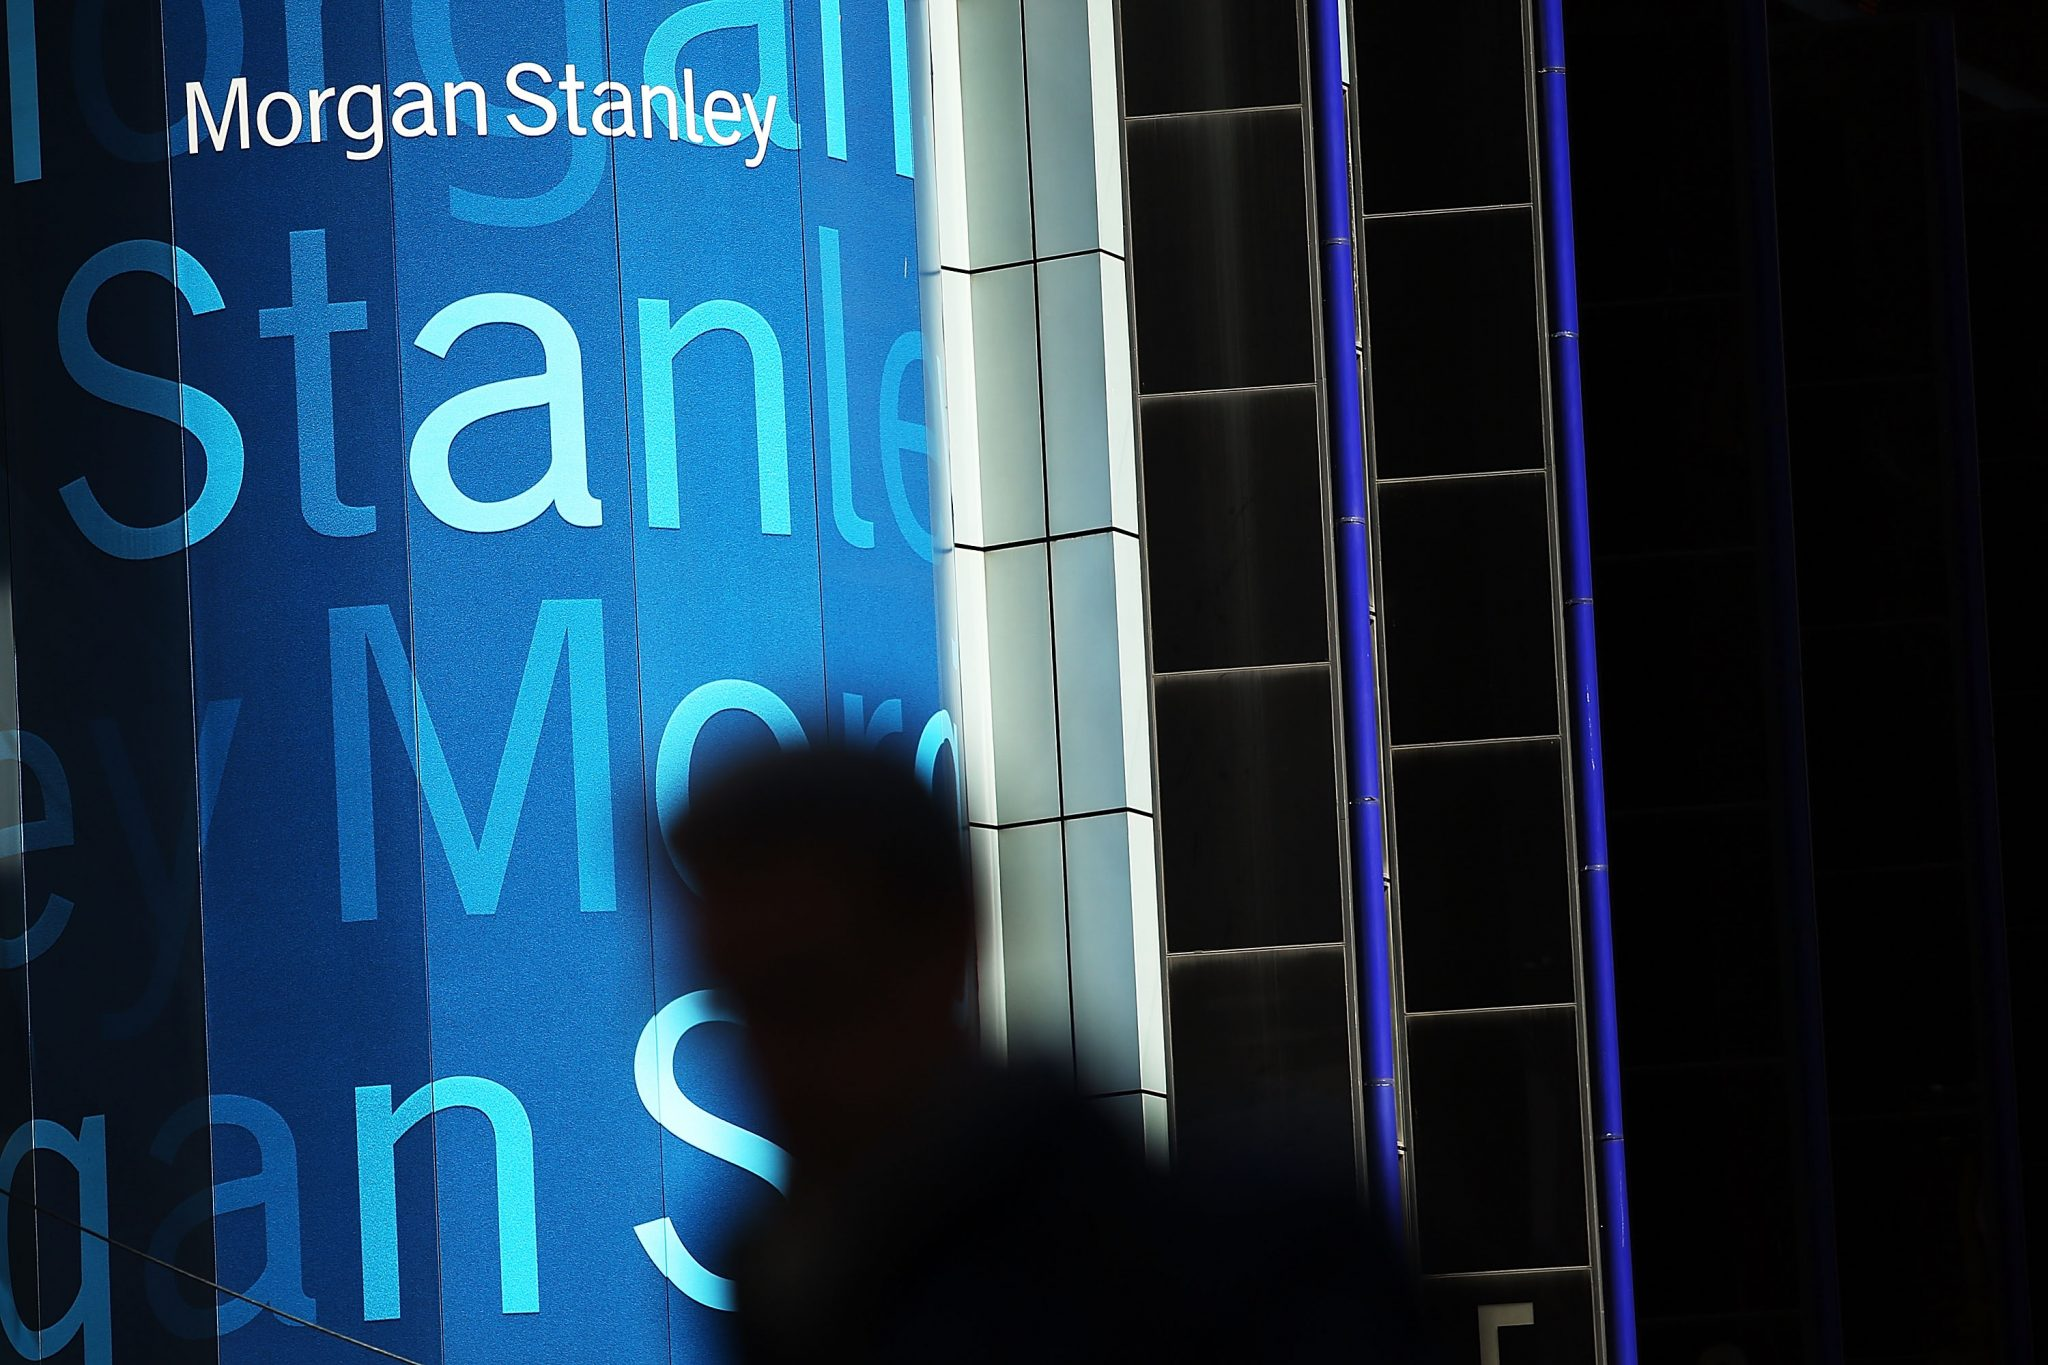 Morgan Stanley Sued for Race Bias by Former Head of Diversity